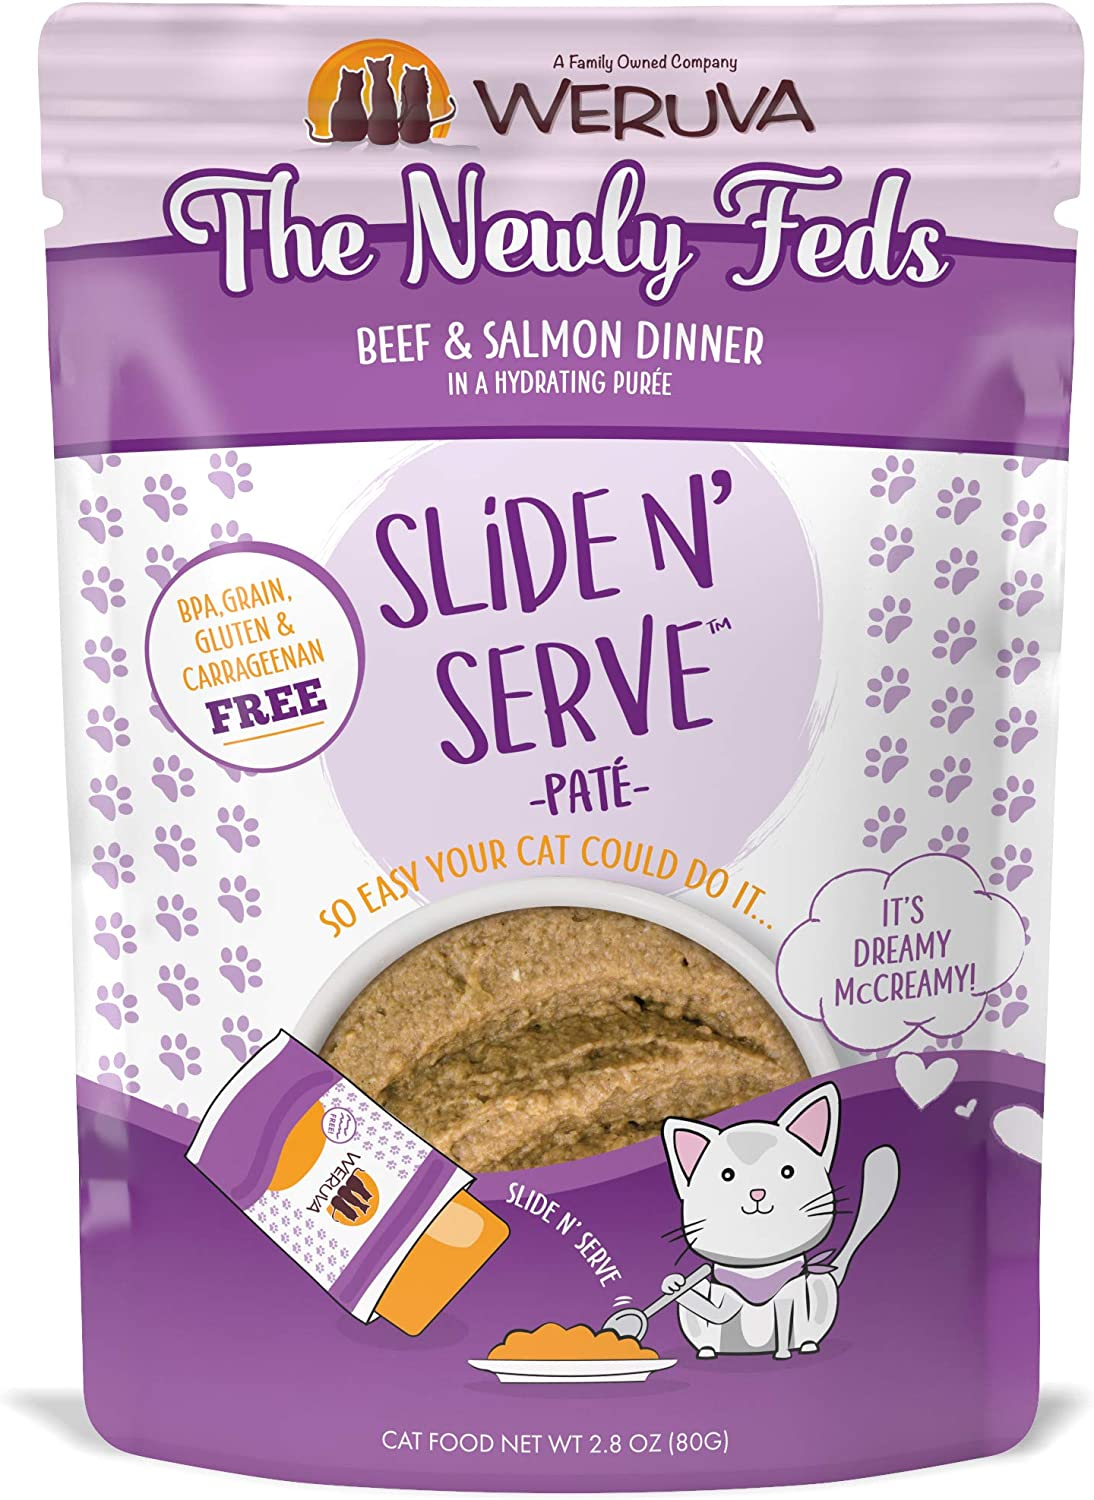 Weruva Slide N' Serve Paté Wet Cat Food, The Newly Feds Beef & Salmon Dinner, 2.8Oz Pouch (Pack Of 12)